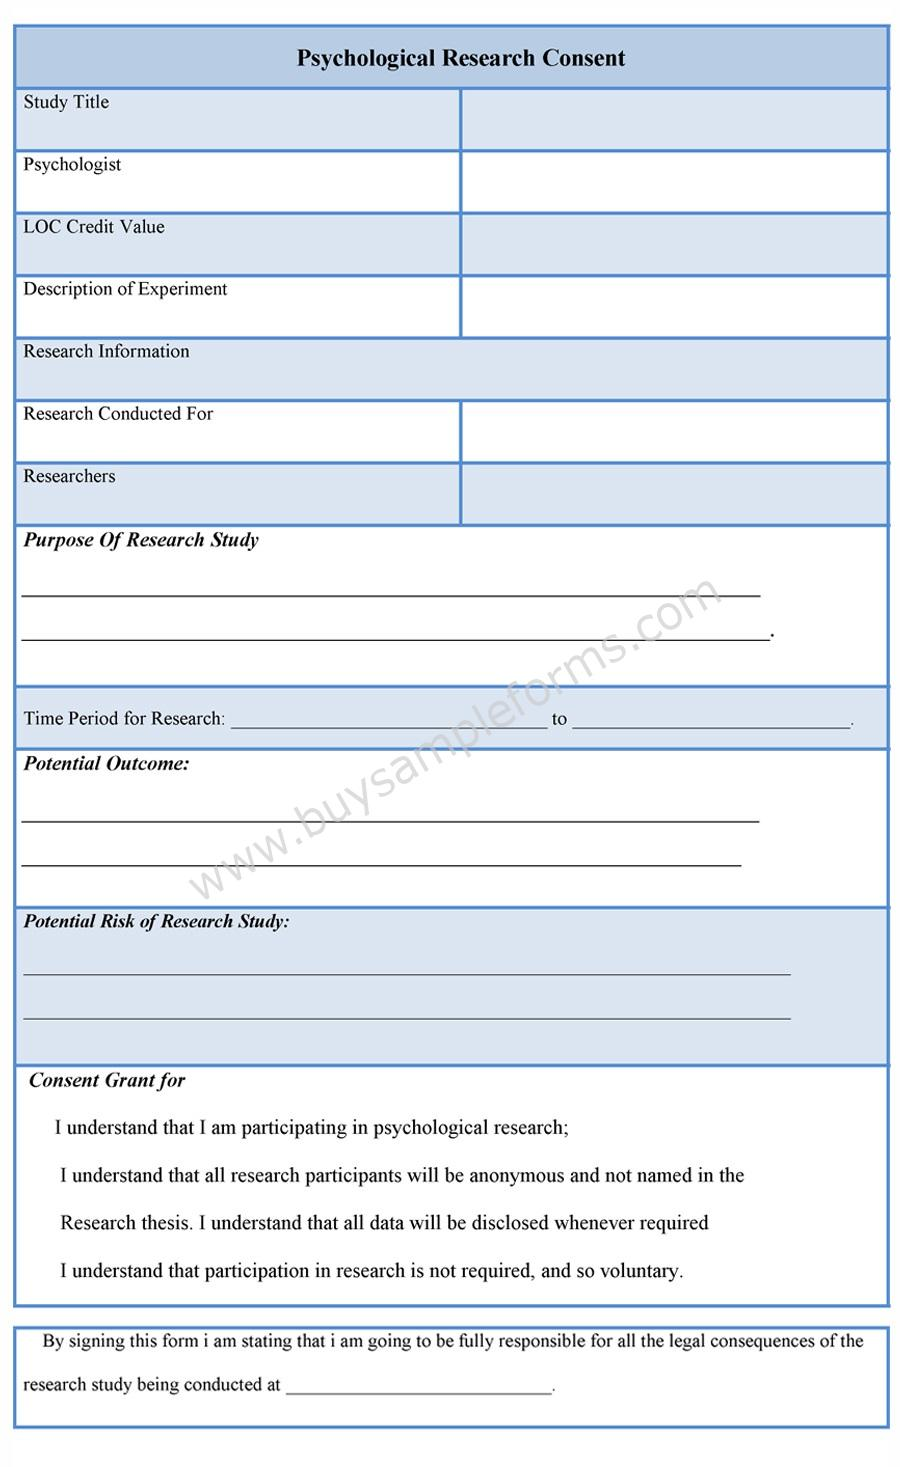 Download Easy To Edit Psychological Research Consent Form At Only $3.00  Free Child Travel Consent Form Template